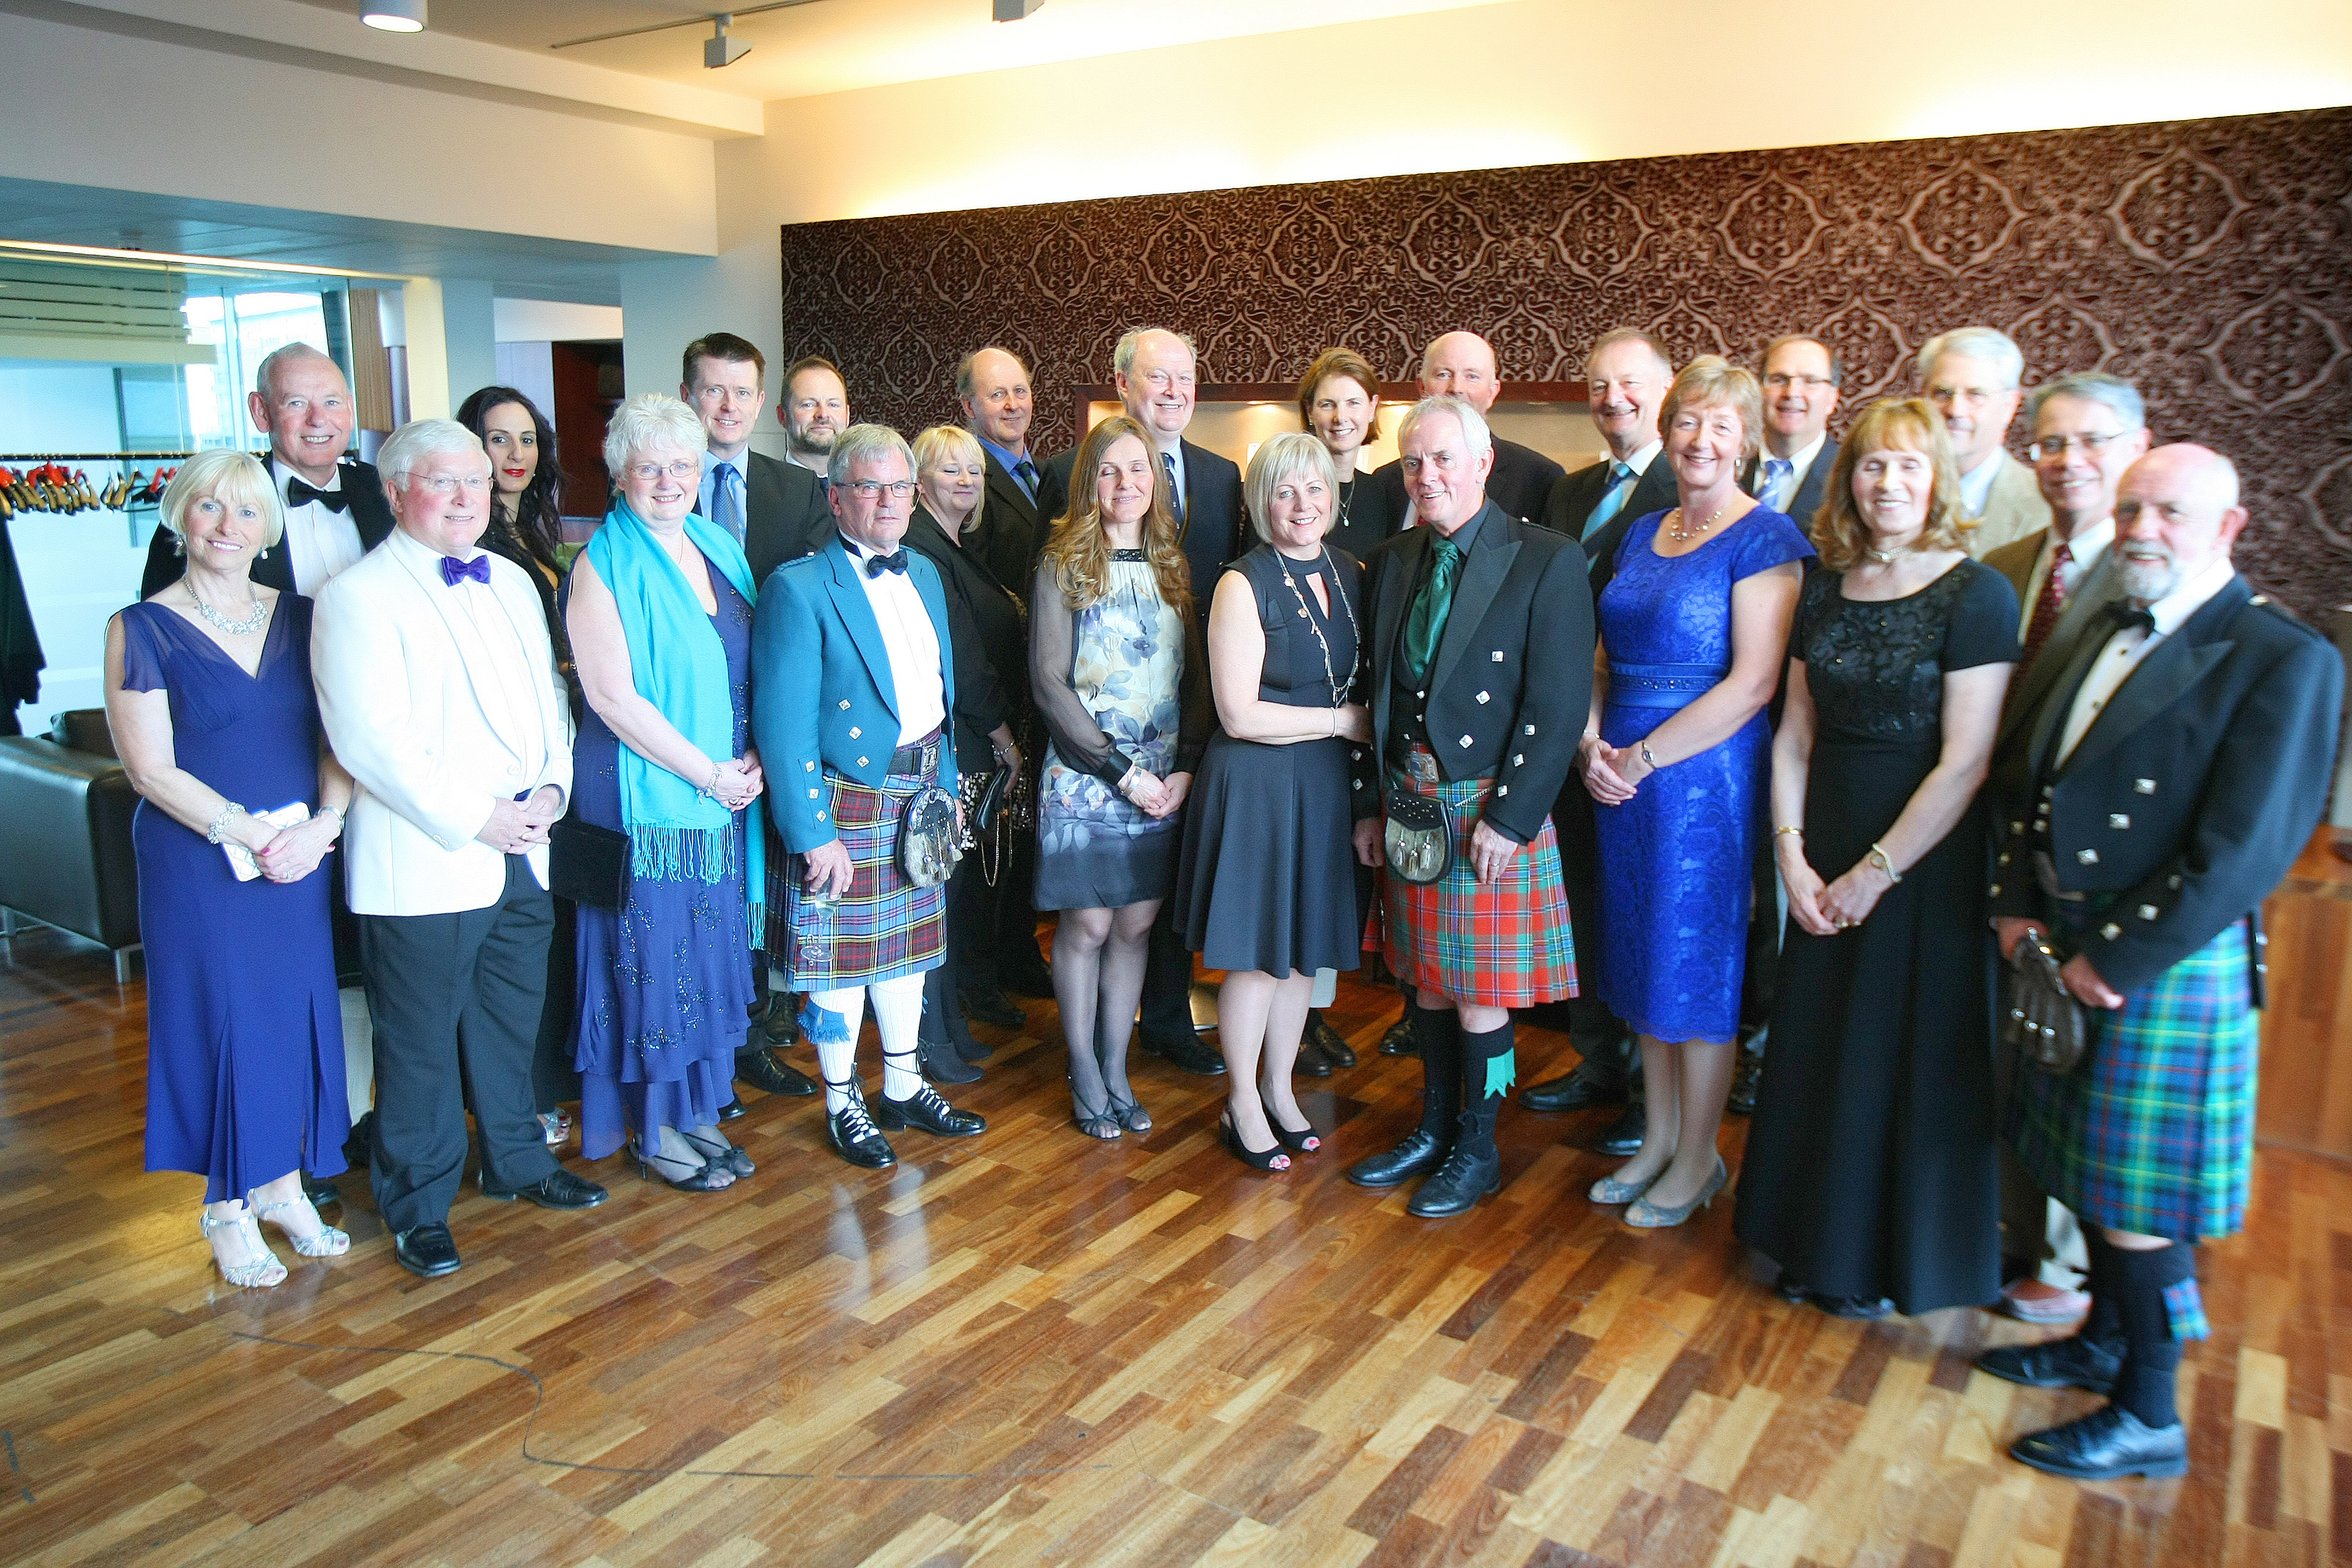 The club captain and other guests at Apex Dundee on April 1.